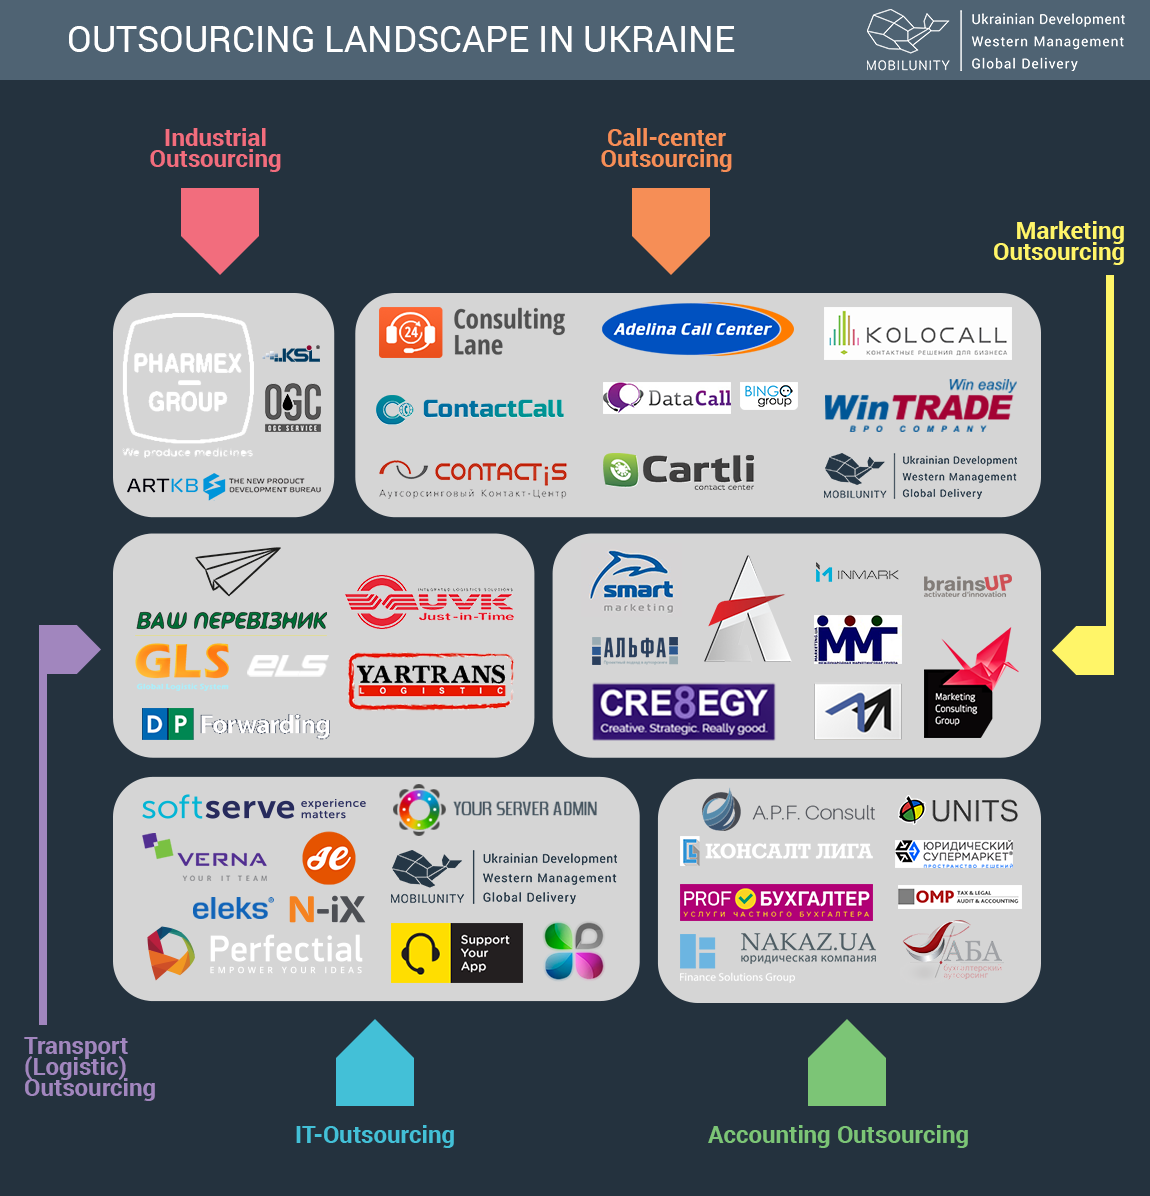 Outsourcing Landscape in Ukraine Including Trends in IT Outsourcing